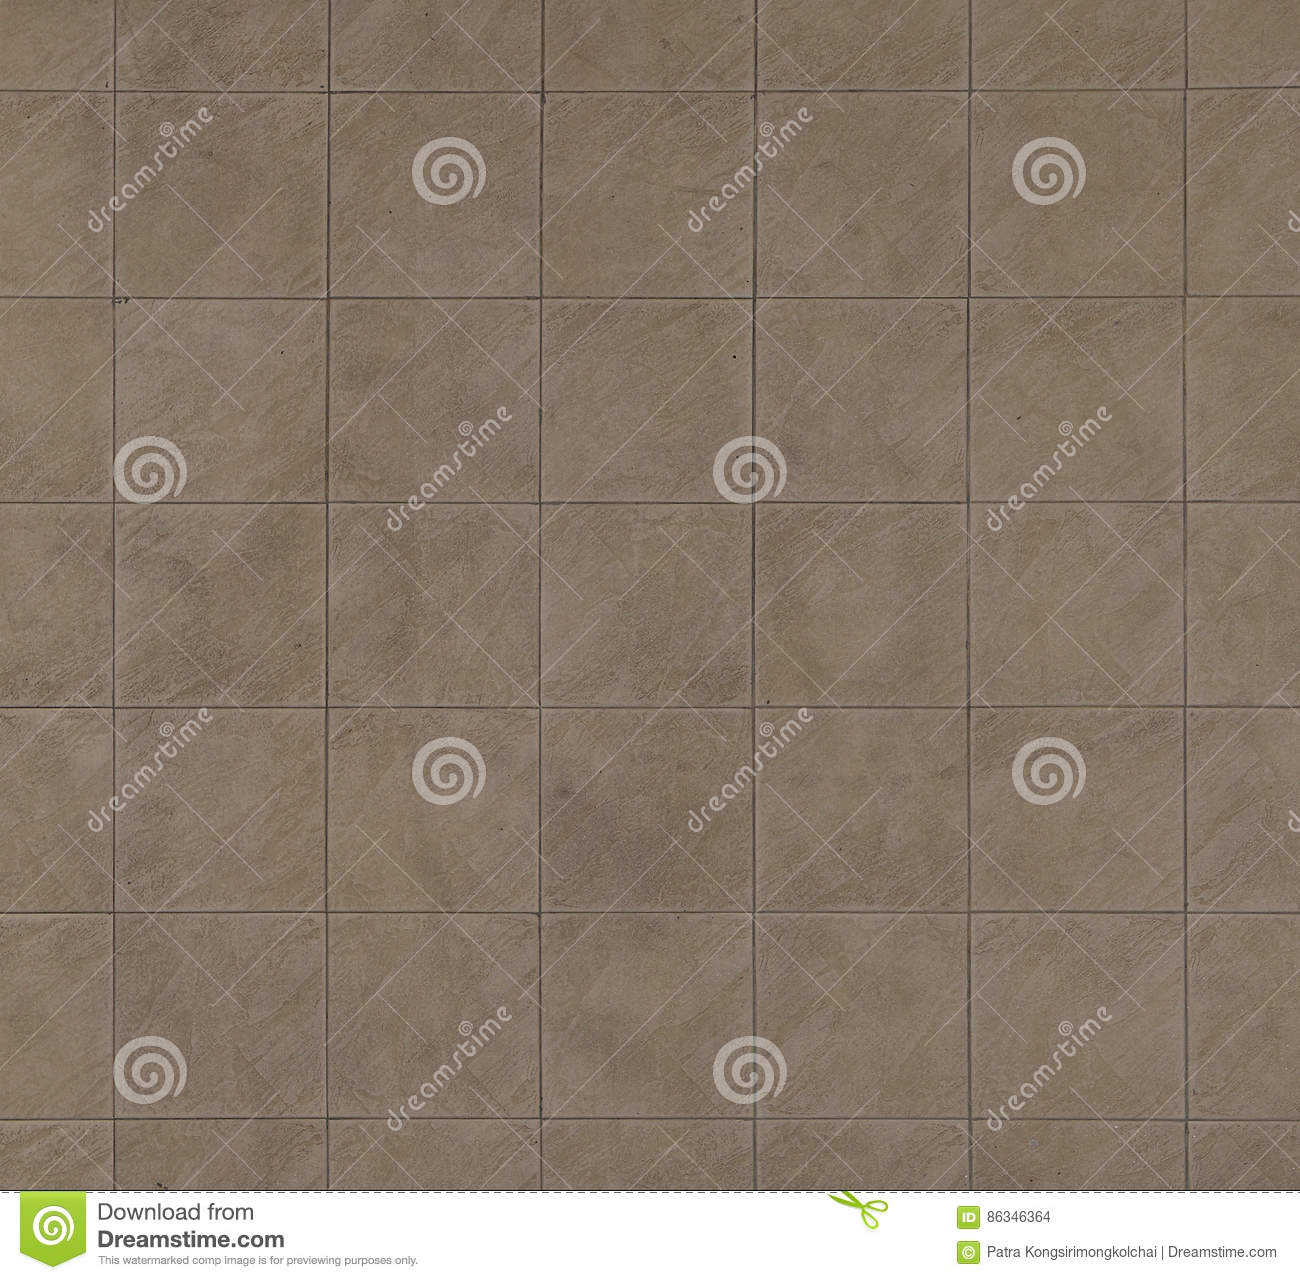 natural seamless stone texture tile - Natural Stone Tile